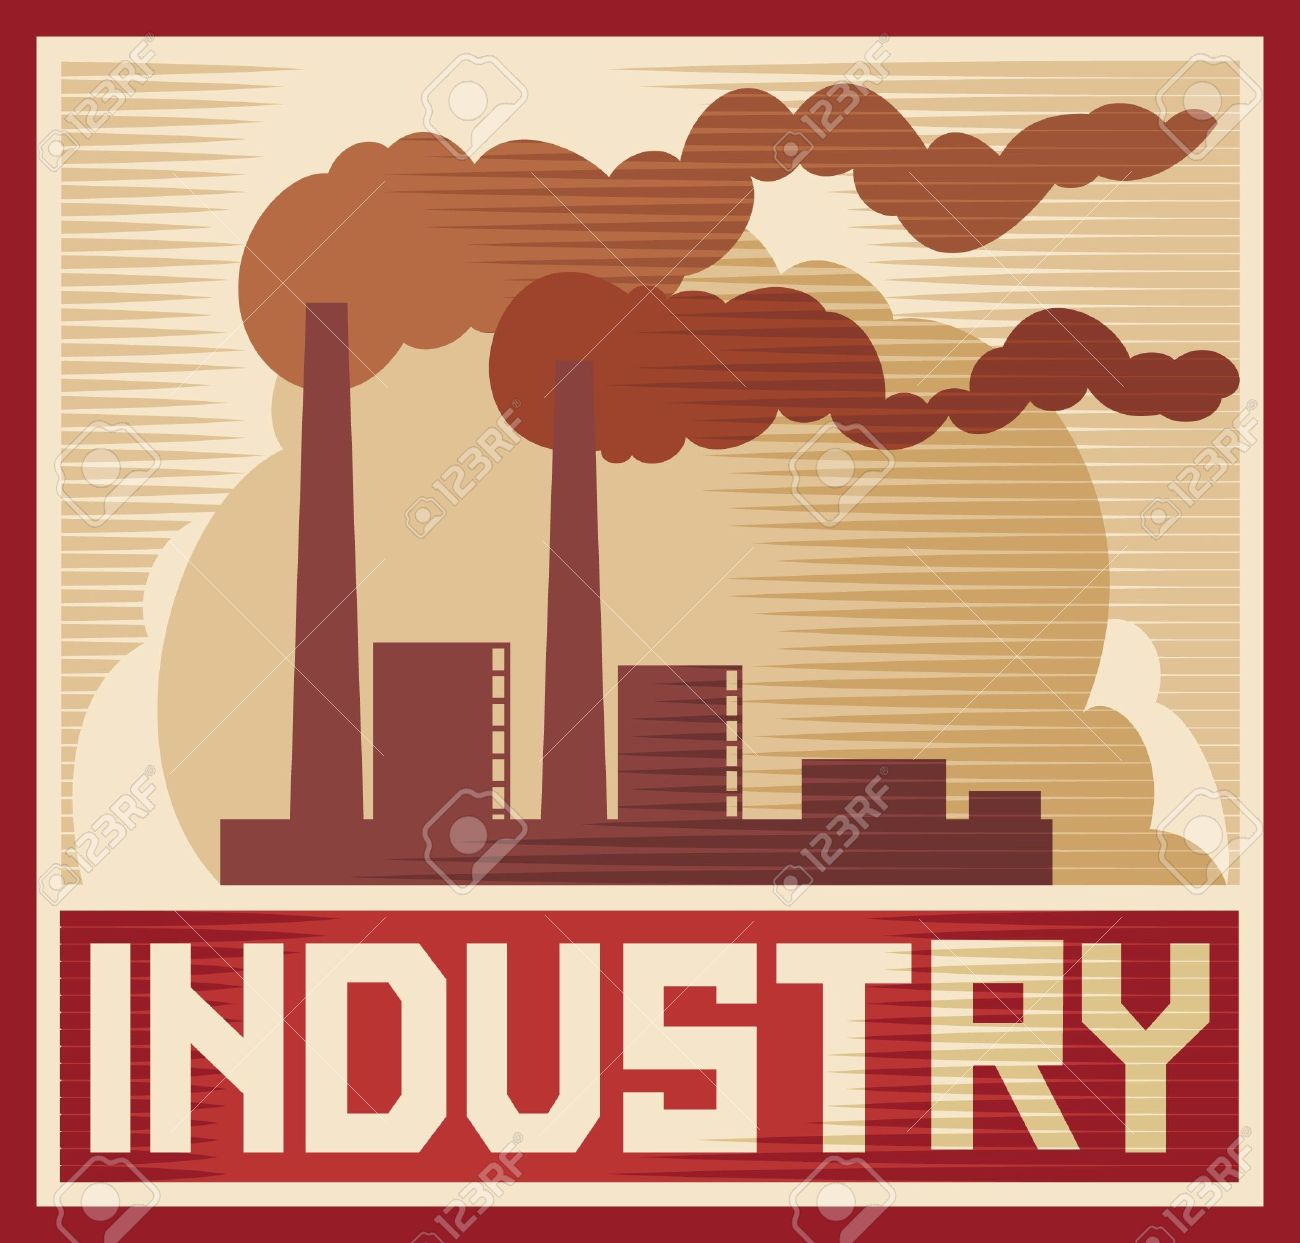 Industry Poster - Industrial Plant Industry Design, Industrial ...